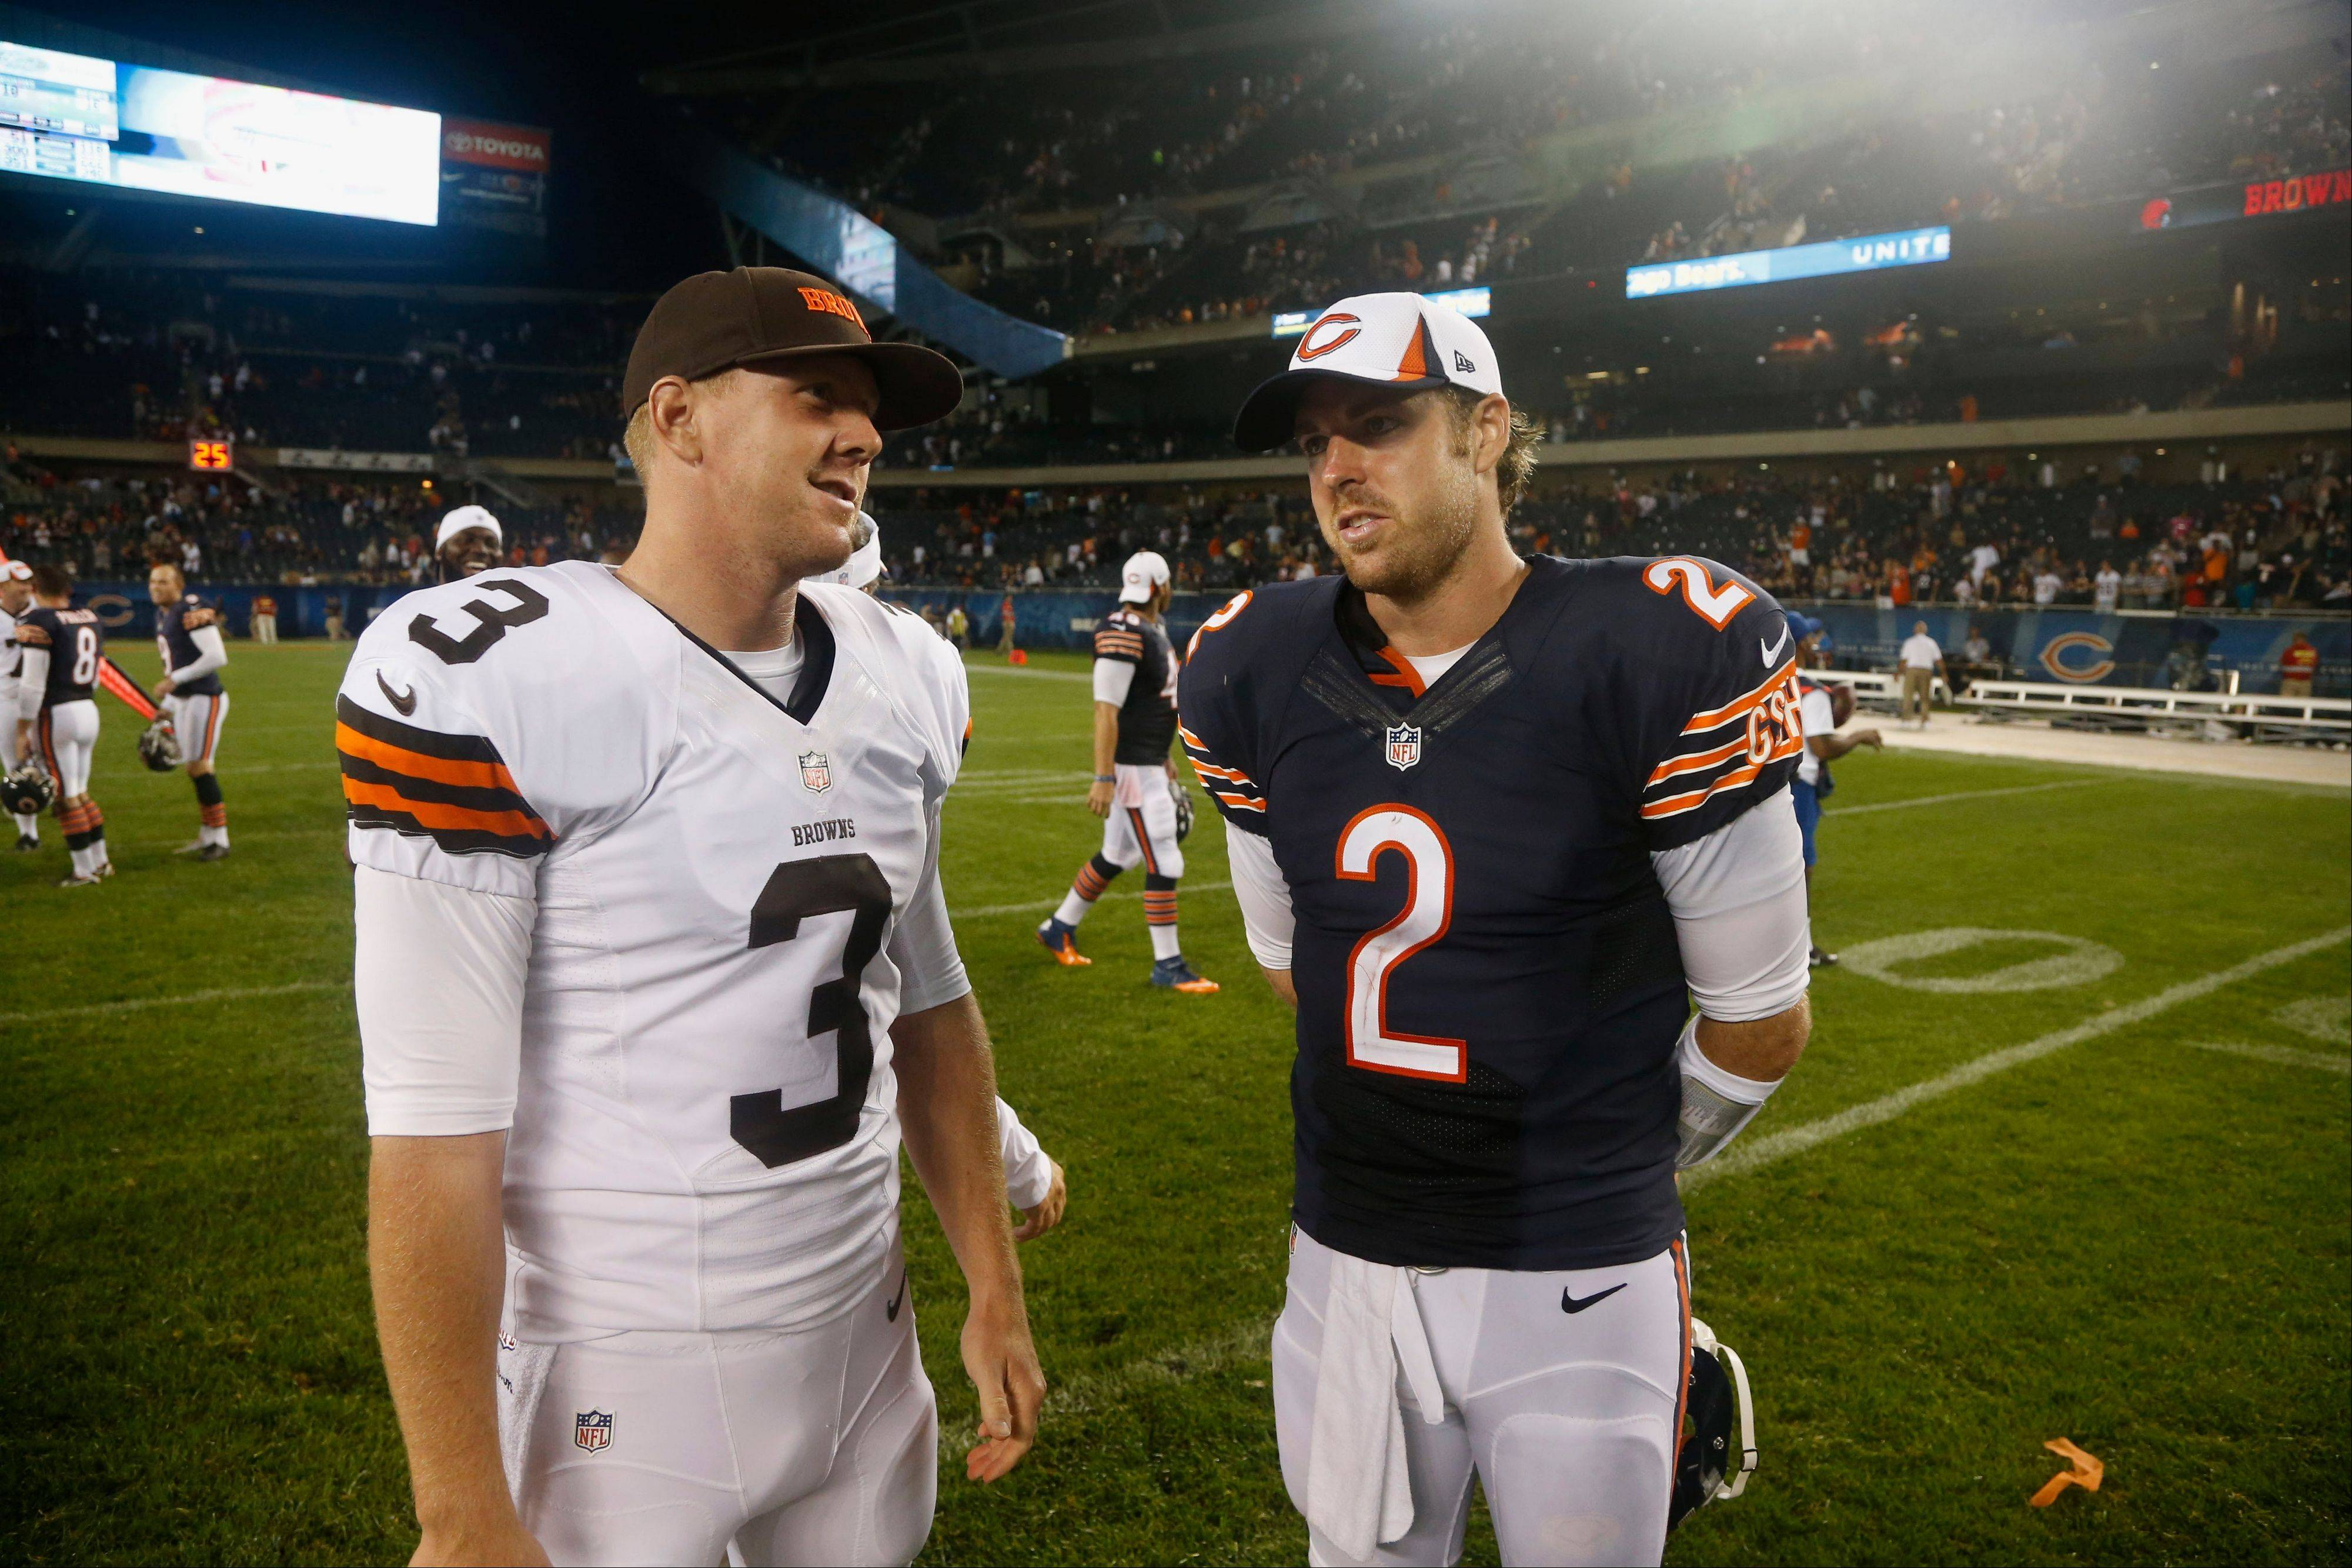 Cleveland Browns quarterback Brandon Weeden (3) and Chicago Bears quarterback Jordan Palmer (2) talk after the Browns' 18-16 win over the Bears in a preseason NFL football game on Thursday, Aug. 29, 2013, in Chicago.